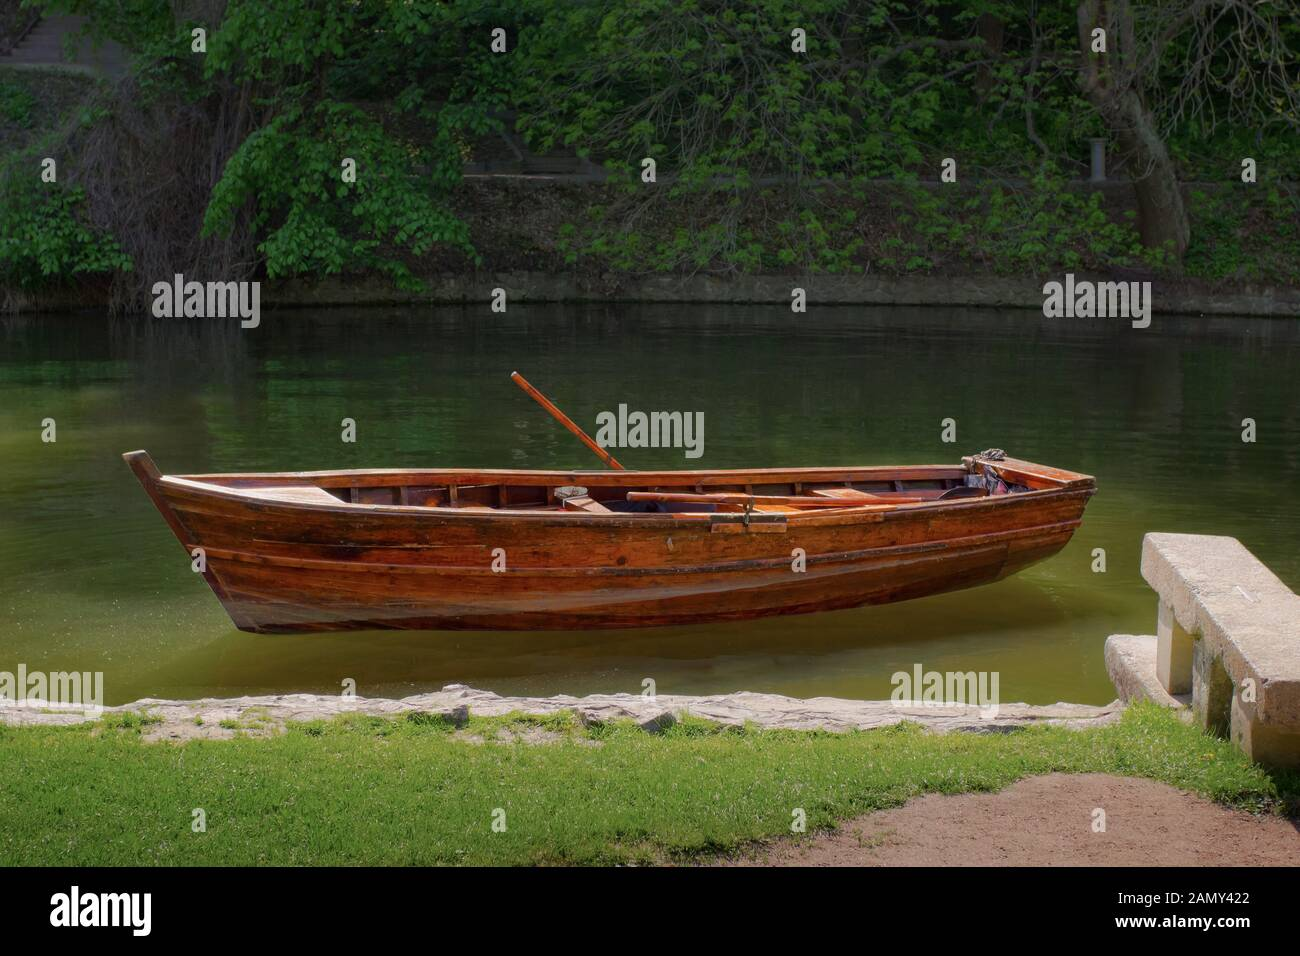 Wooden boat standing near river bank in park, solitude and calmness, relaxation Stock Photo